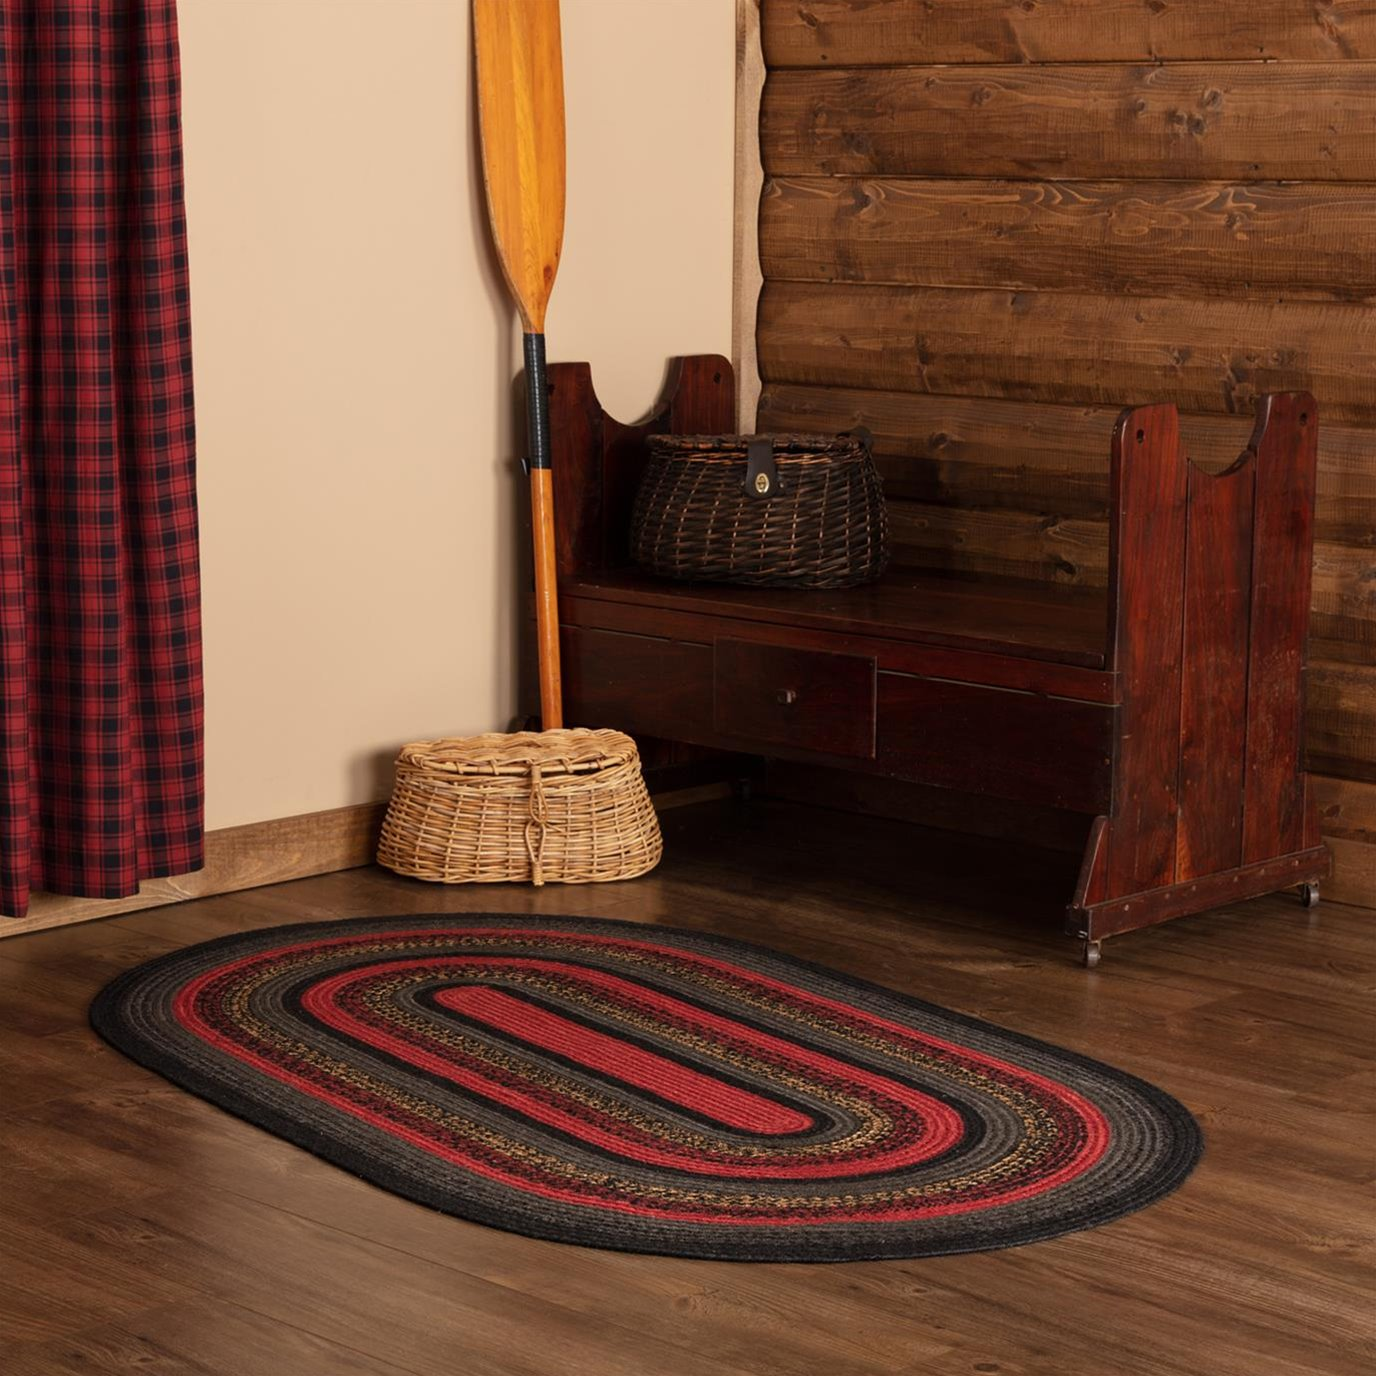 Cumberland Jute Rug Oval 48x72 By Oak Amp Asher Vhc Brands